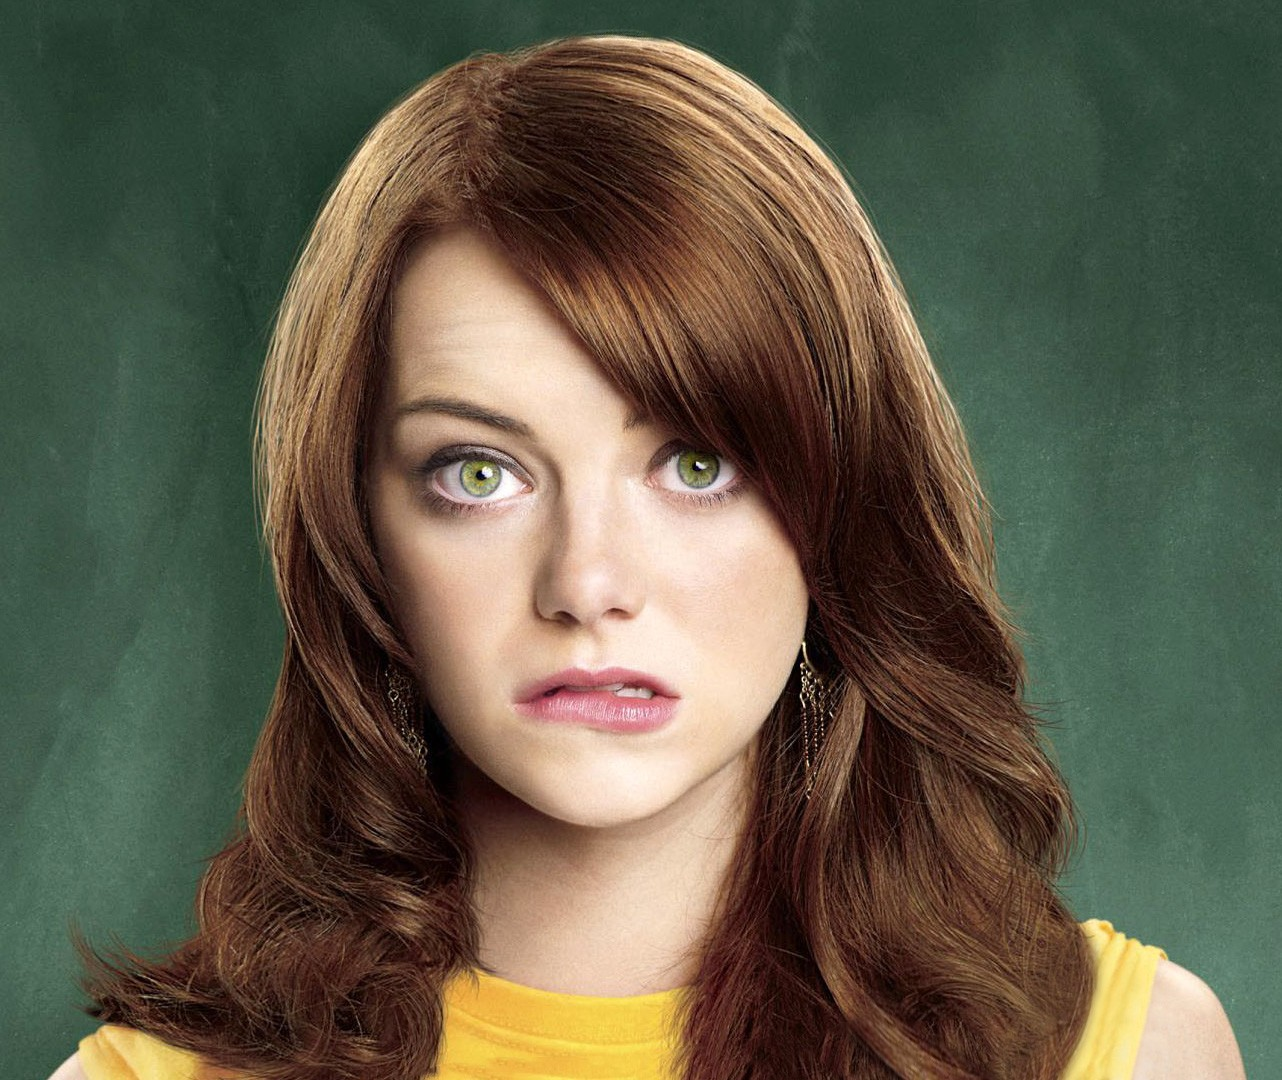 Emma Stone in Zombieland With Big Eyes 8